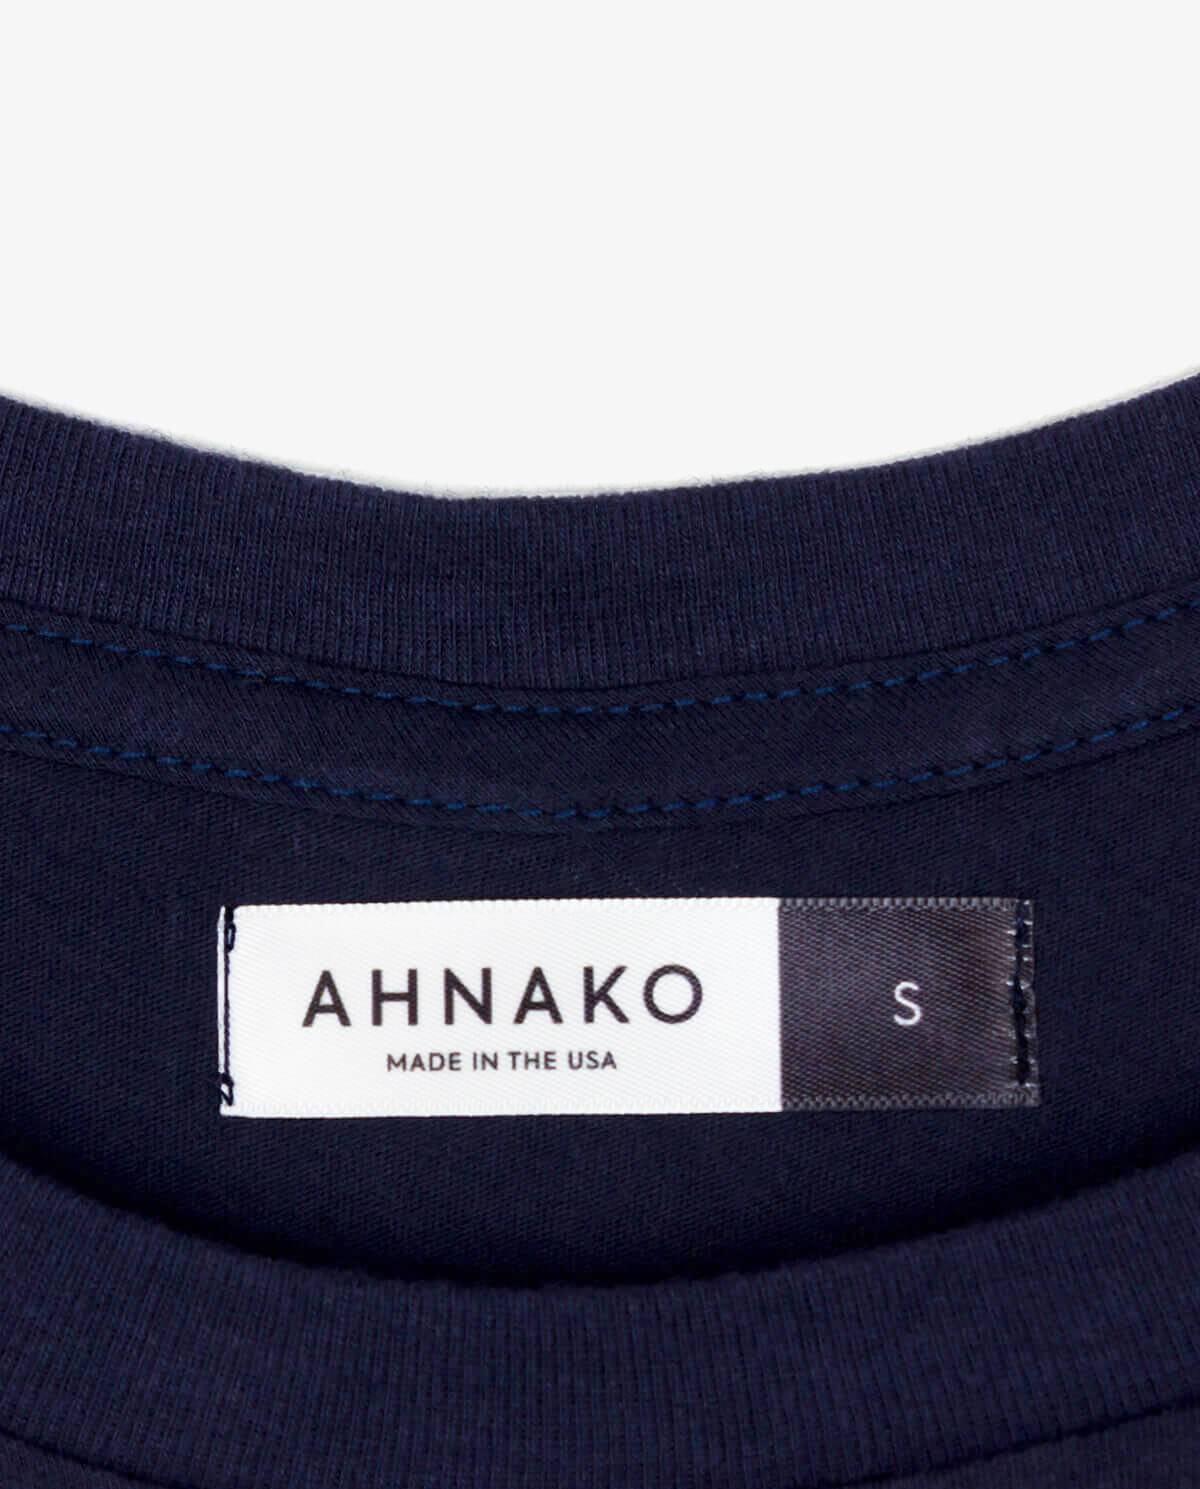 Ahnako Women's Mountains - Midnight T-shirt - Clothing Tag